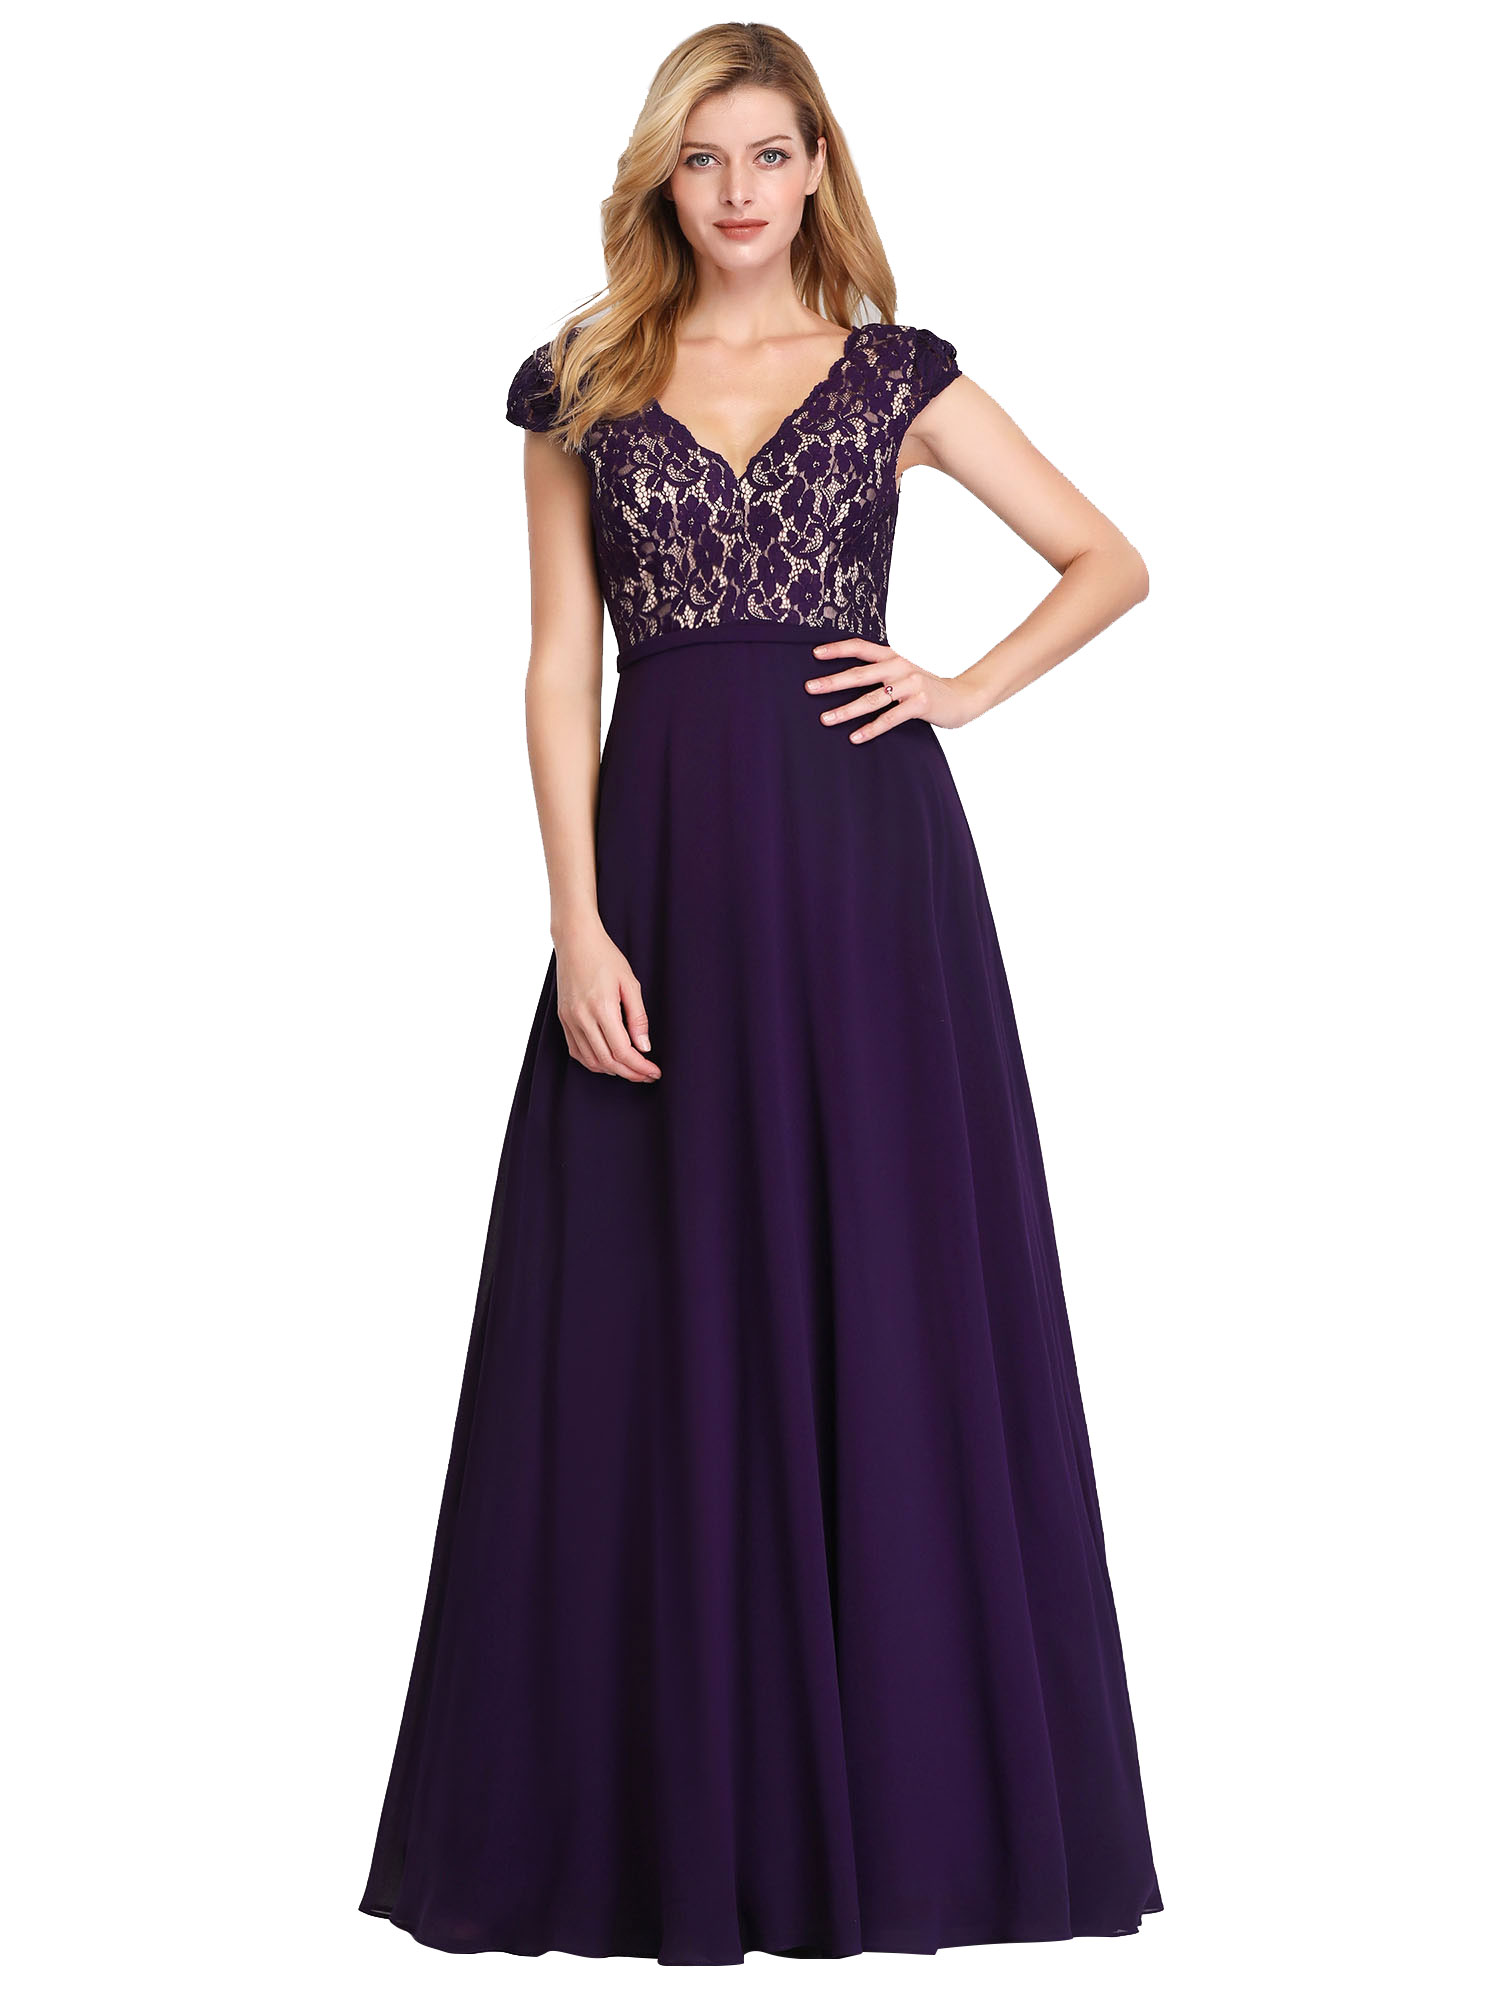 Details about Ever-pretty Long Purple V-neck Evening Gown Formal Party  A-line Dress Plus Size